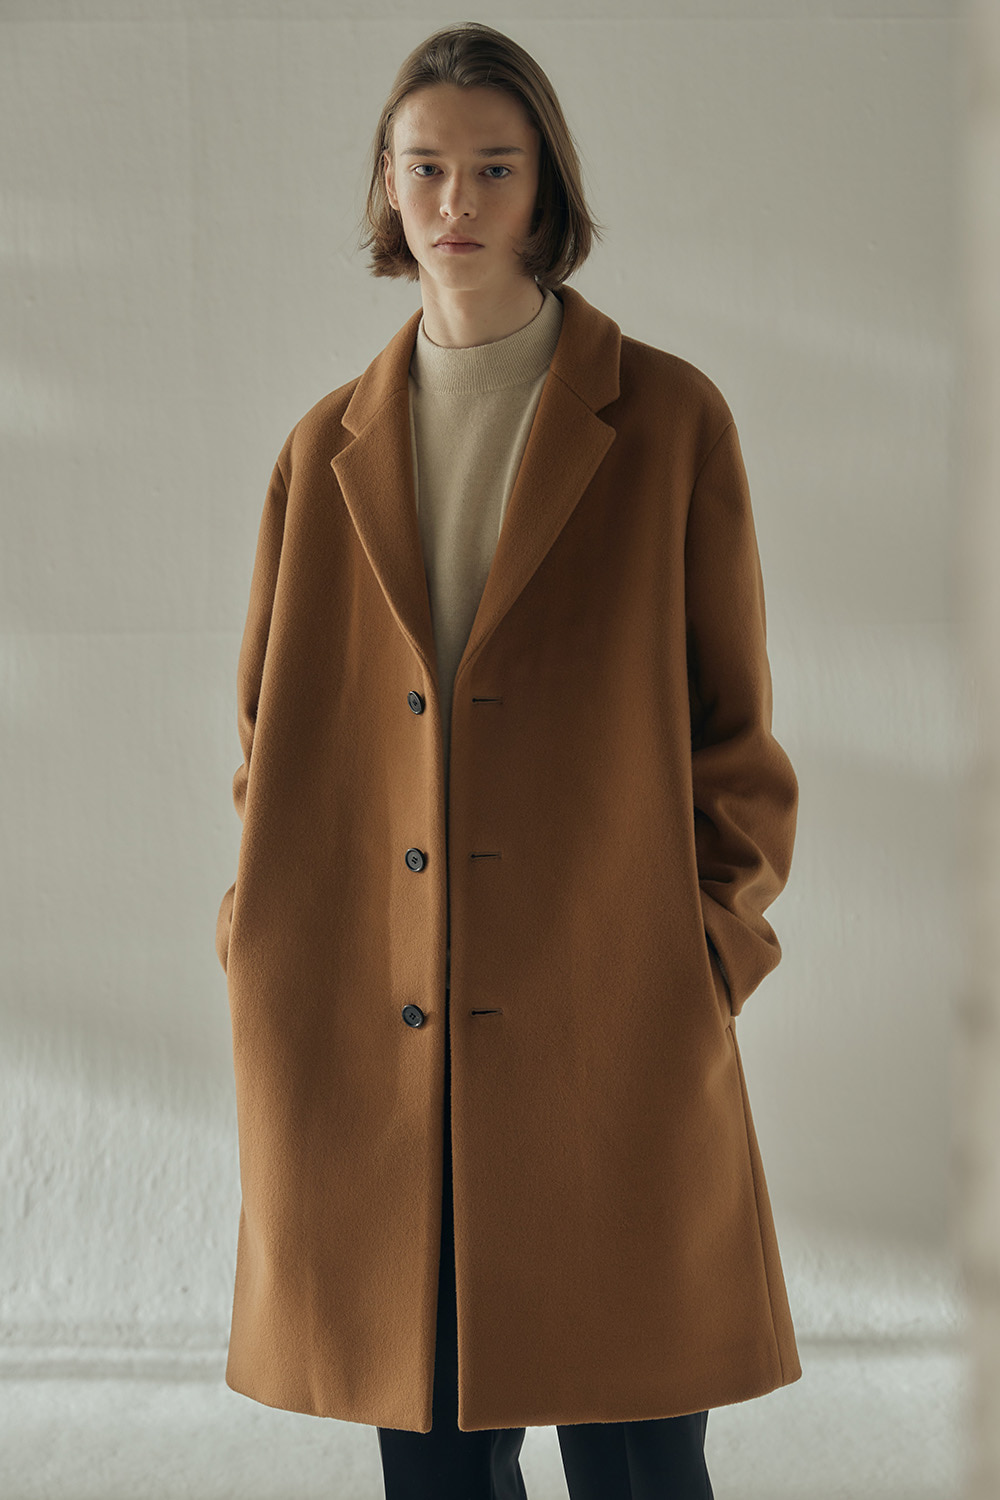 2020 EASY COAT (CAMEL, CASHMERE BLENDED)